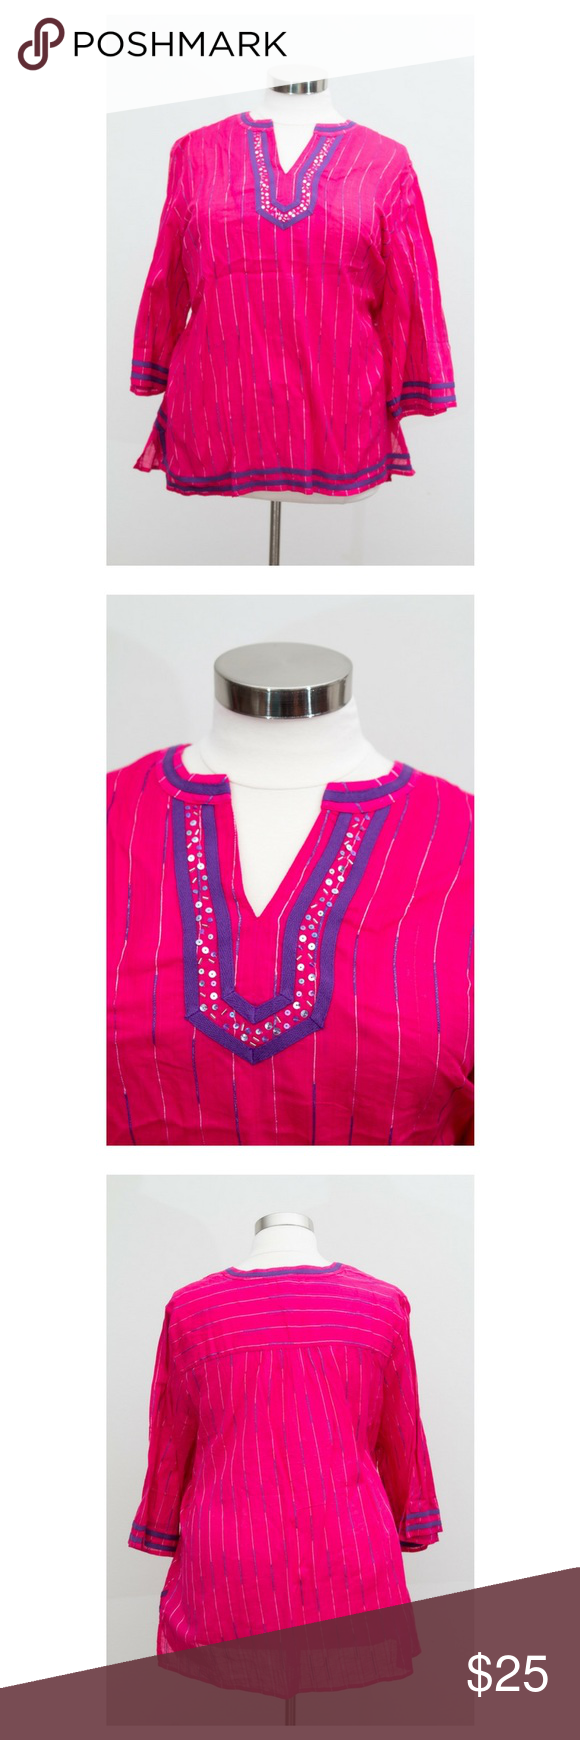 Catherine's NWOT Pink Bohemian Top Size 3X. Please note this top is NWOT and to prevent returns the tag has been marked through. Catherines Tops